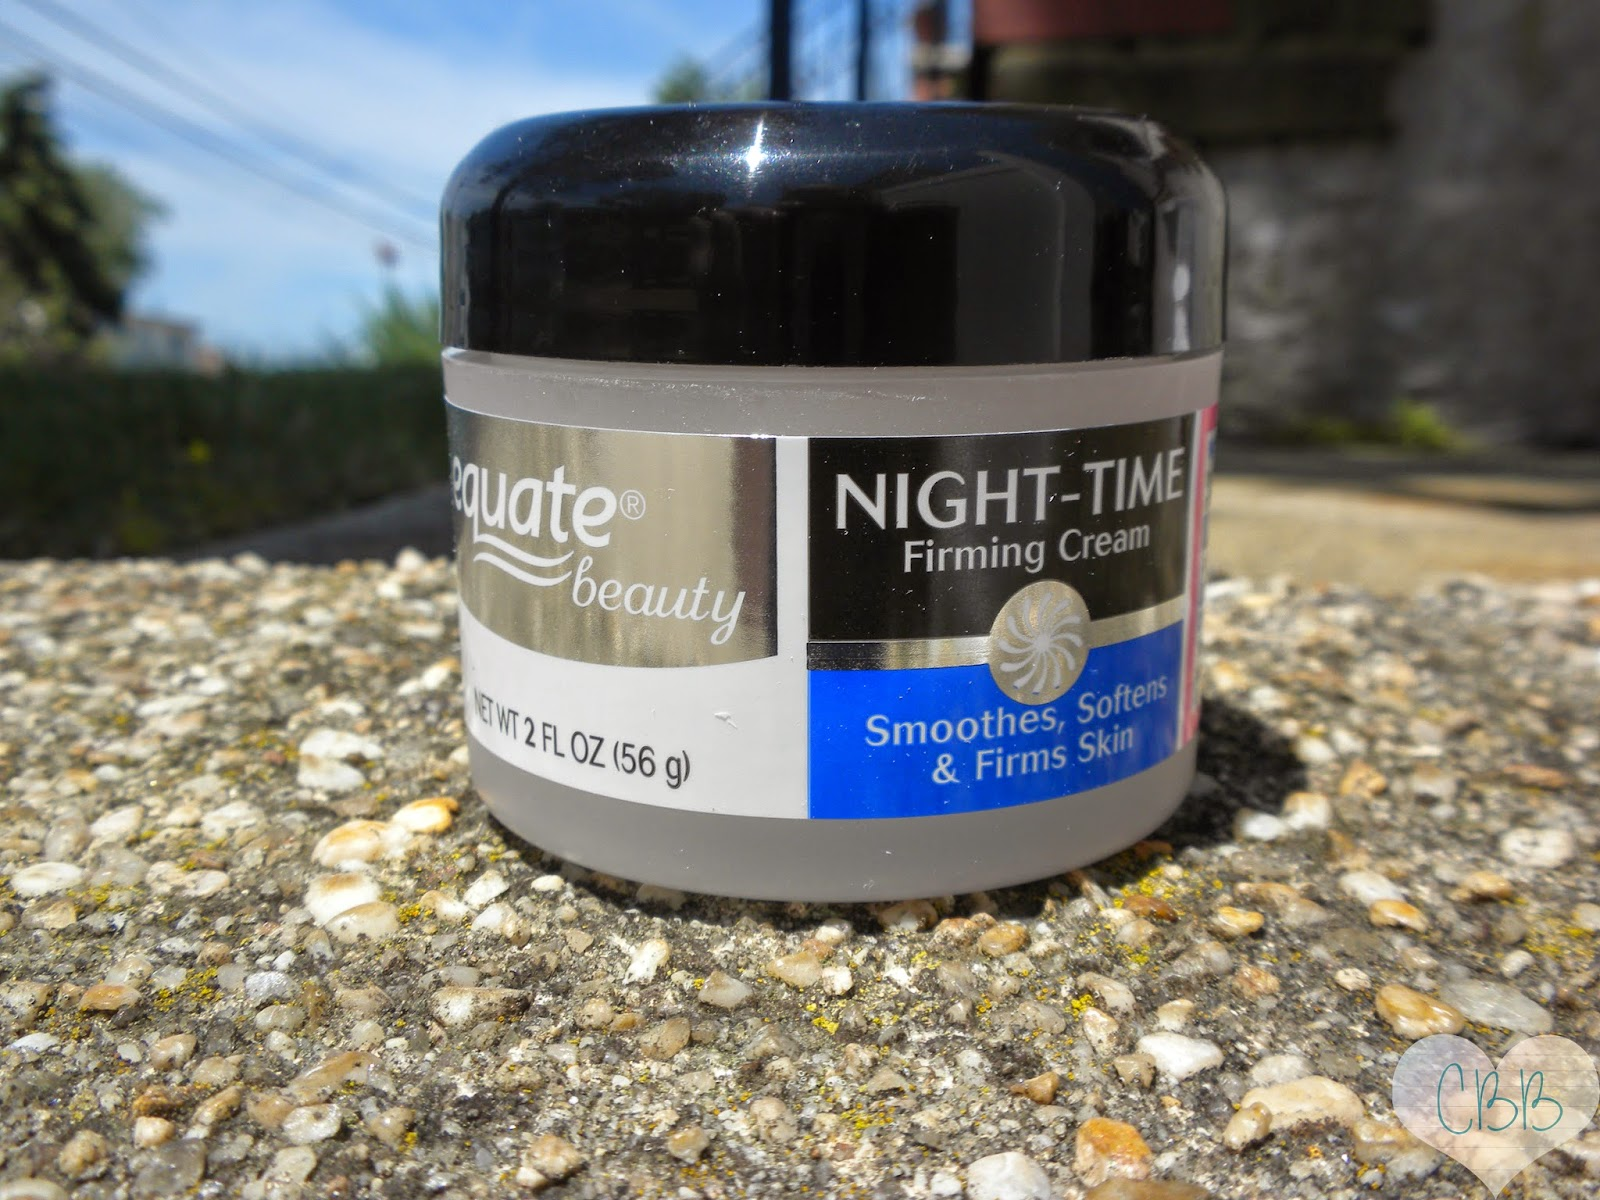 EQUATE Night Firming Cream ($4.67 for 2oz)